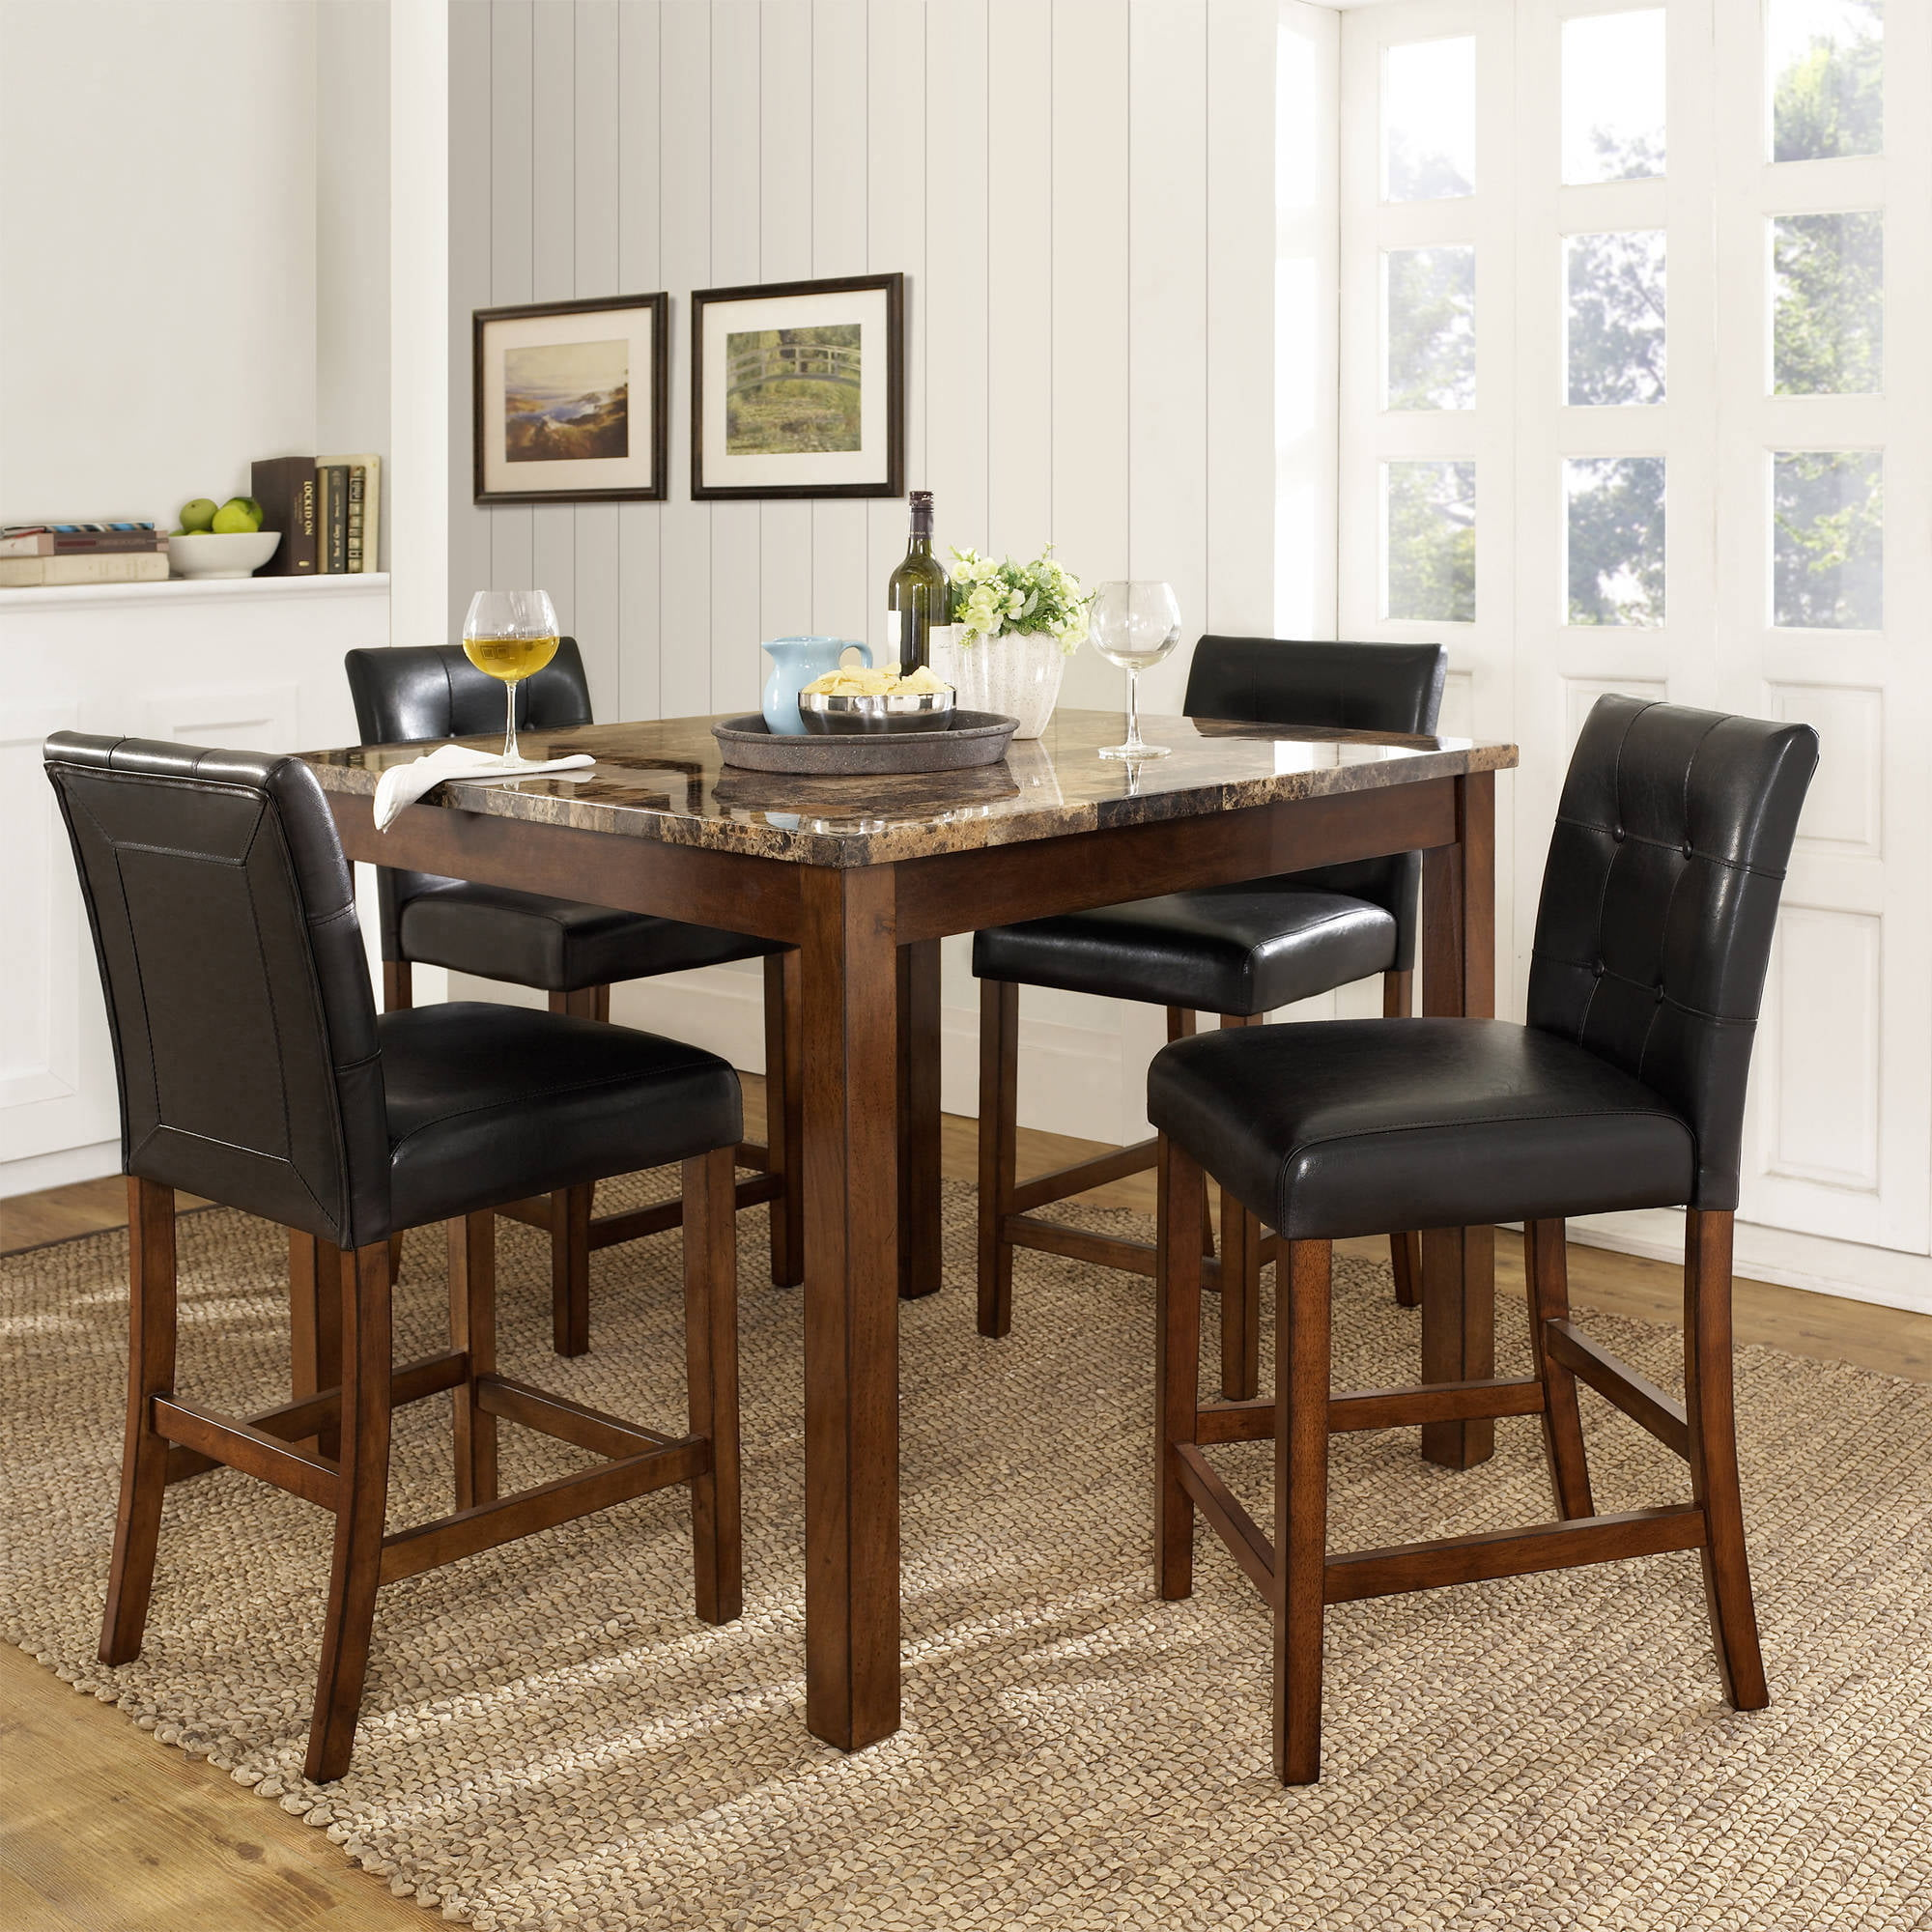 Dorel Living Andover 5-Piece Faux Marble Counter Height Dining Set,  Multiple Colors - Walmart.com